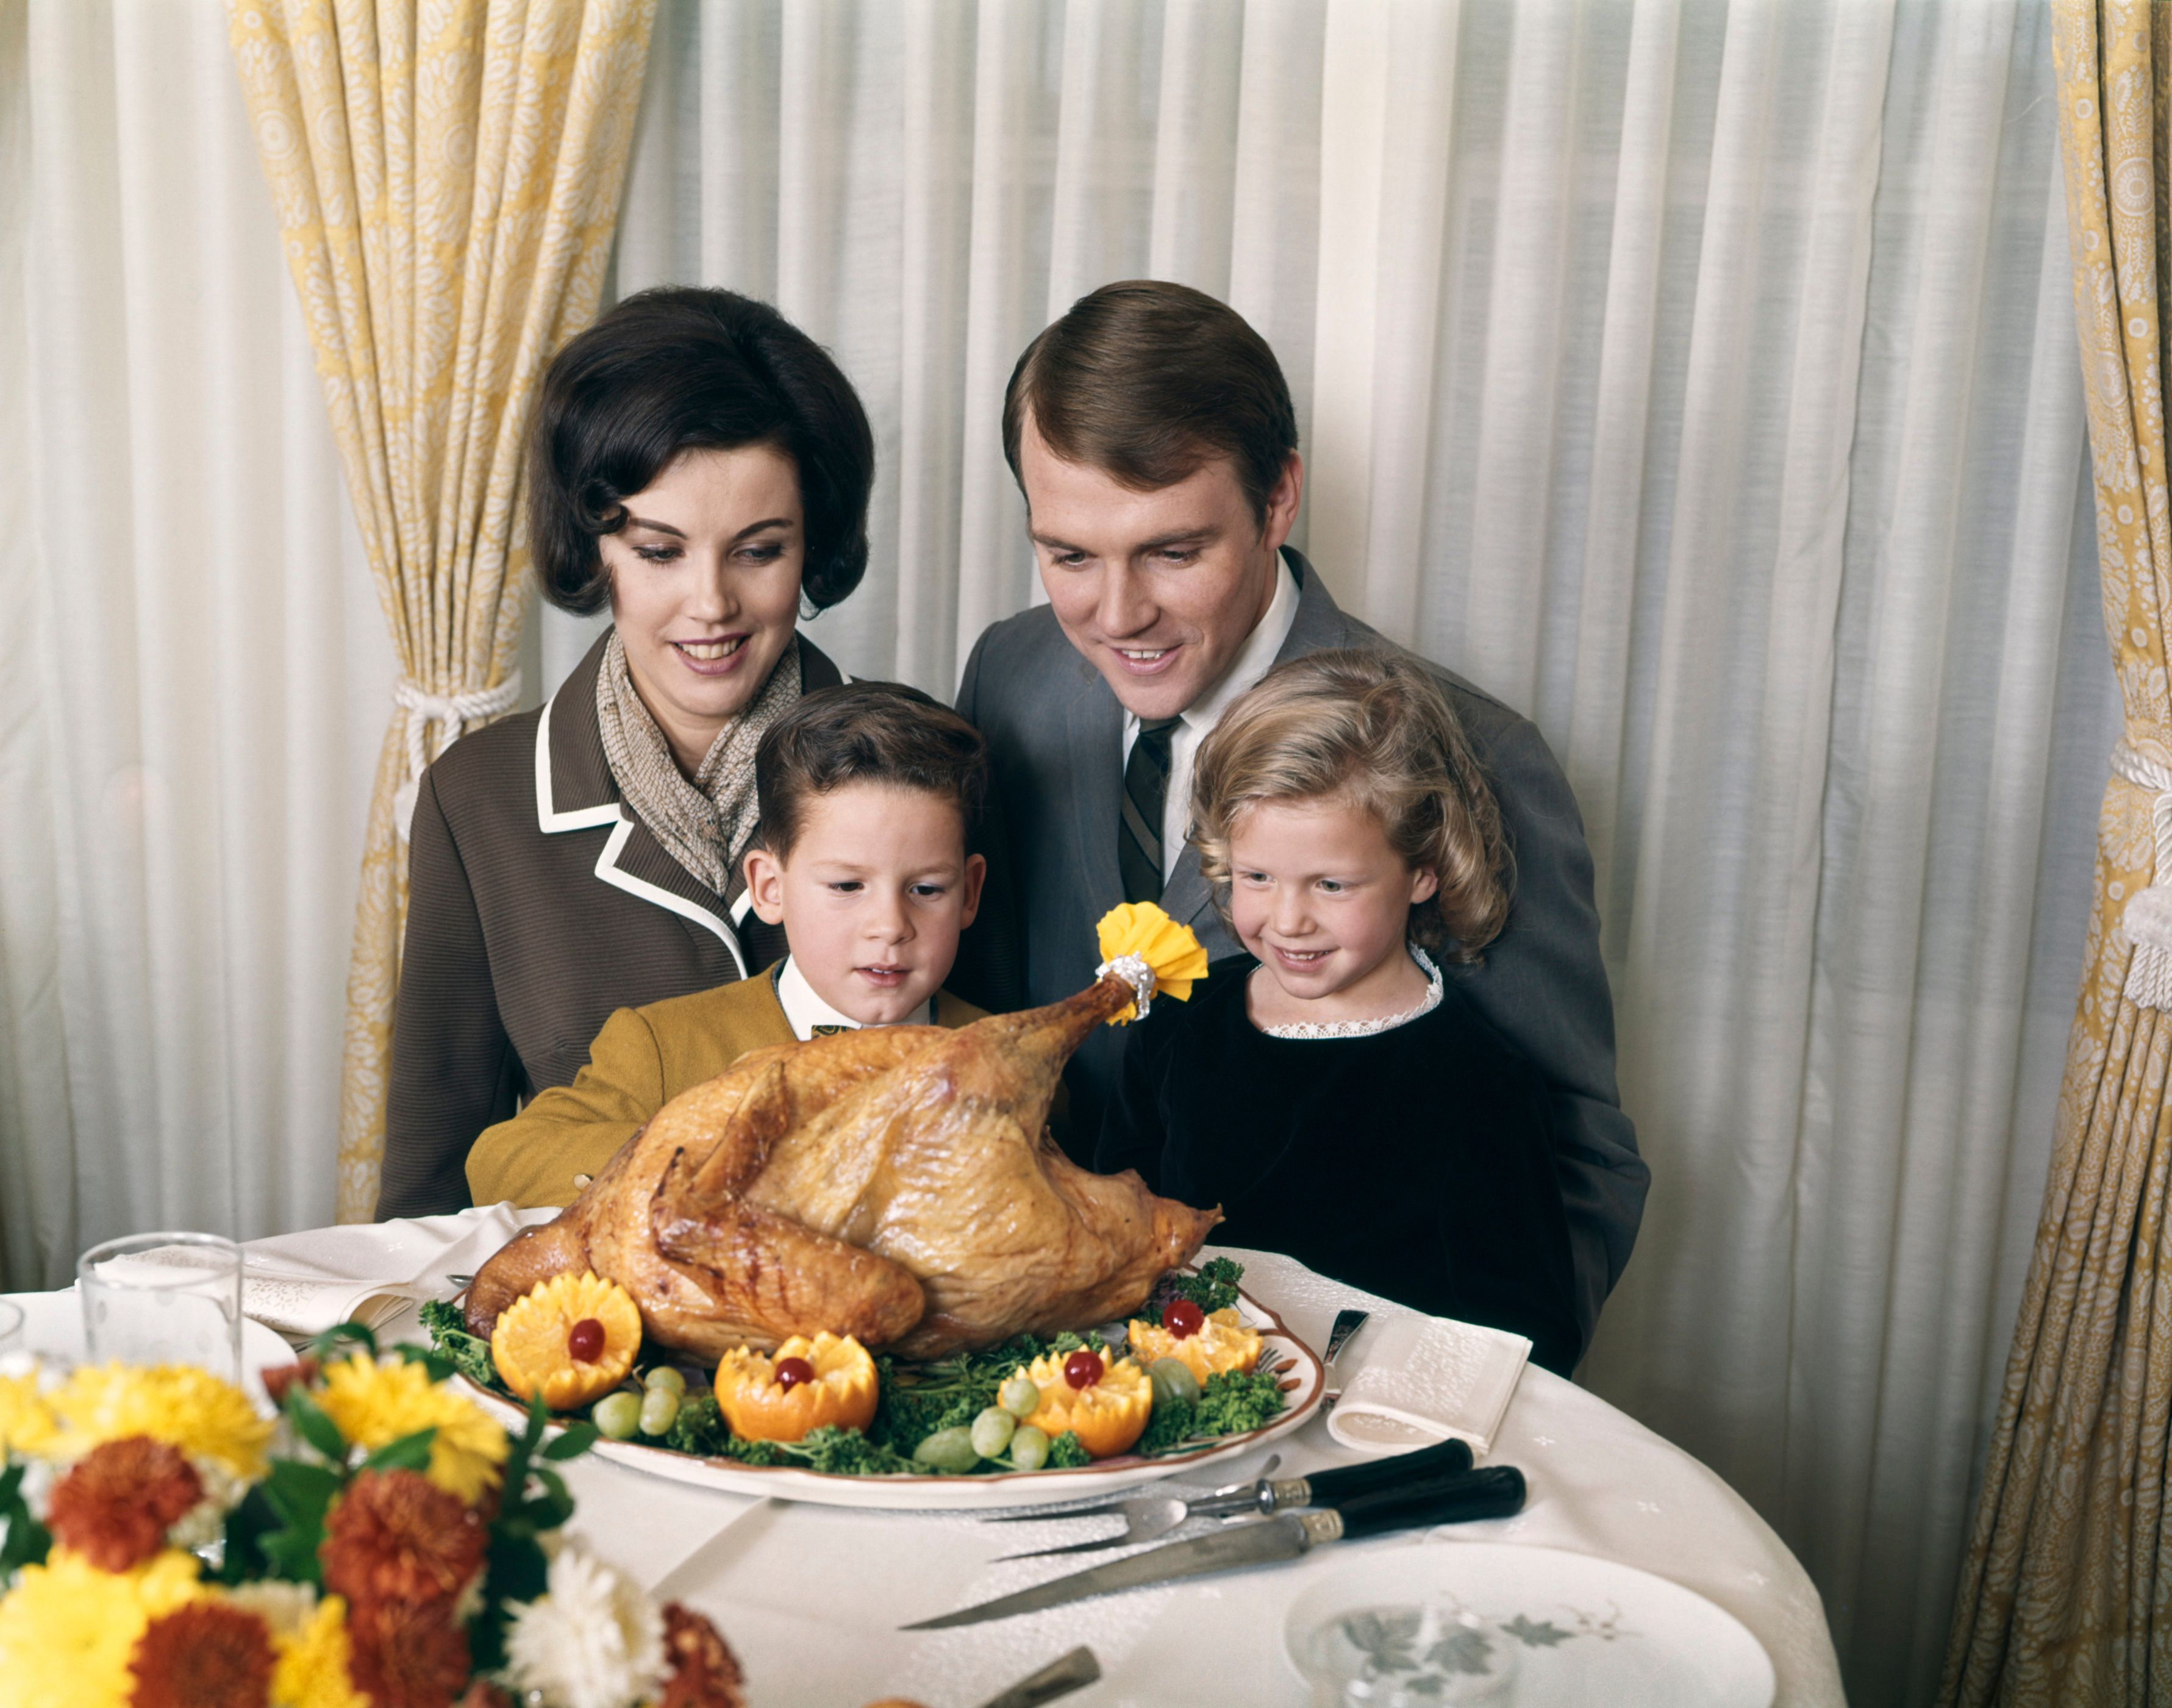 1960s 1970s FAMILY PORTRAIT WITH HOLIDAY ROASTED TURKEY ON DINING TABLE  (Photo by H. Armstrong Roberts/ClassicStock/Getty Images)